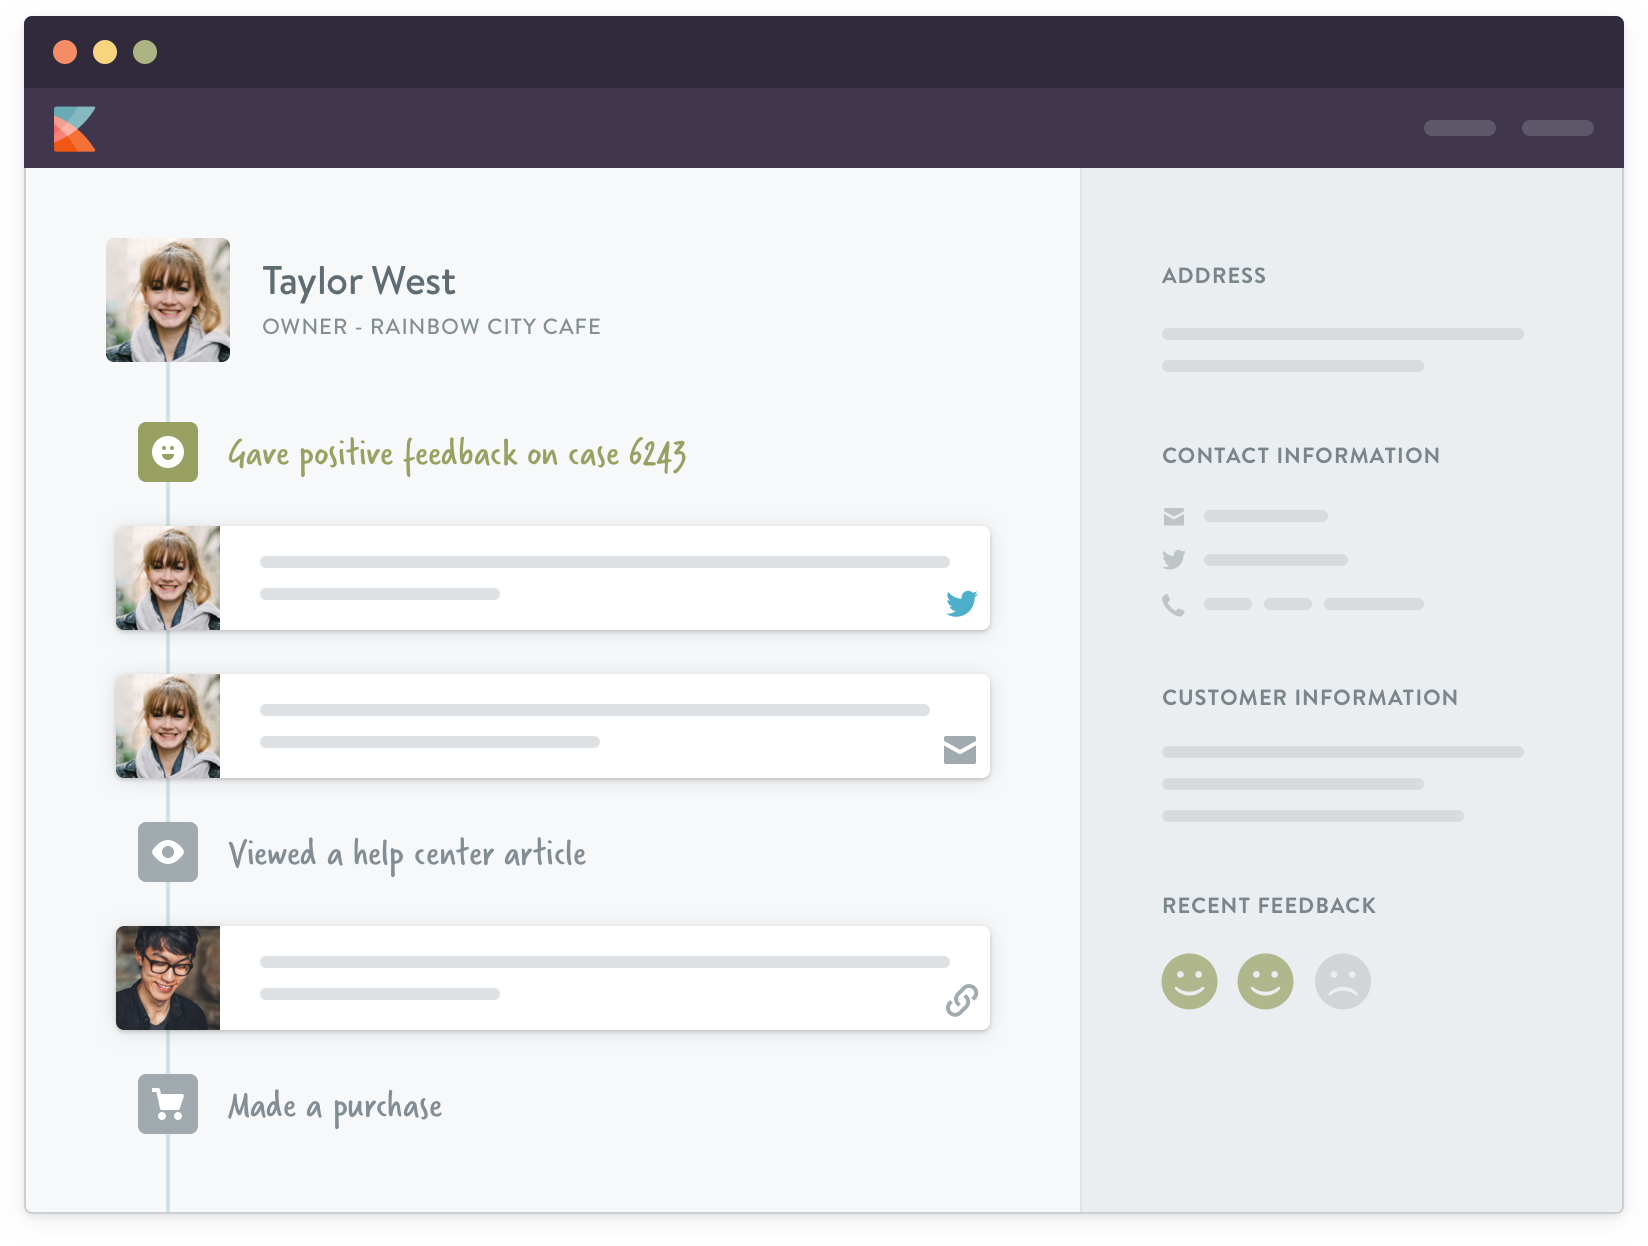 Kayako screenshot: Unified cases: see each customer's information in the context of the conversation to get more personal.